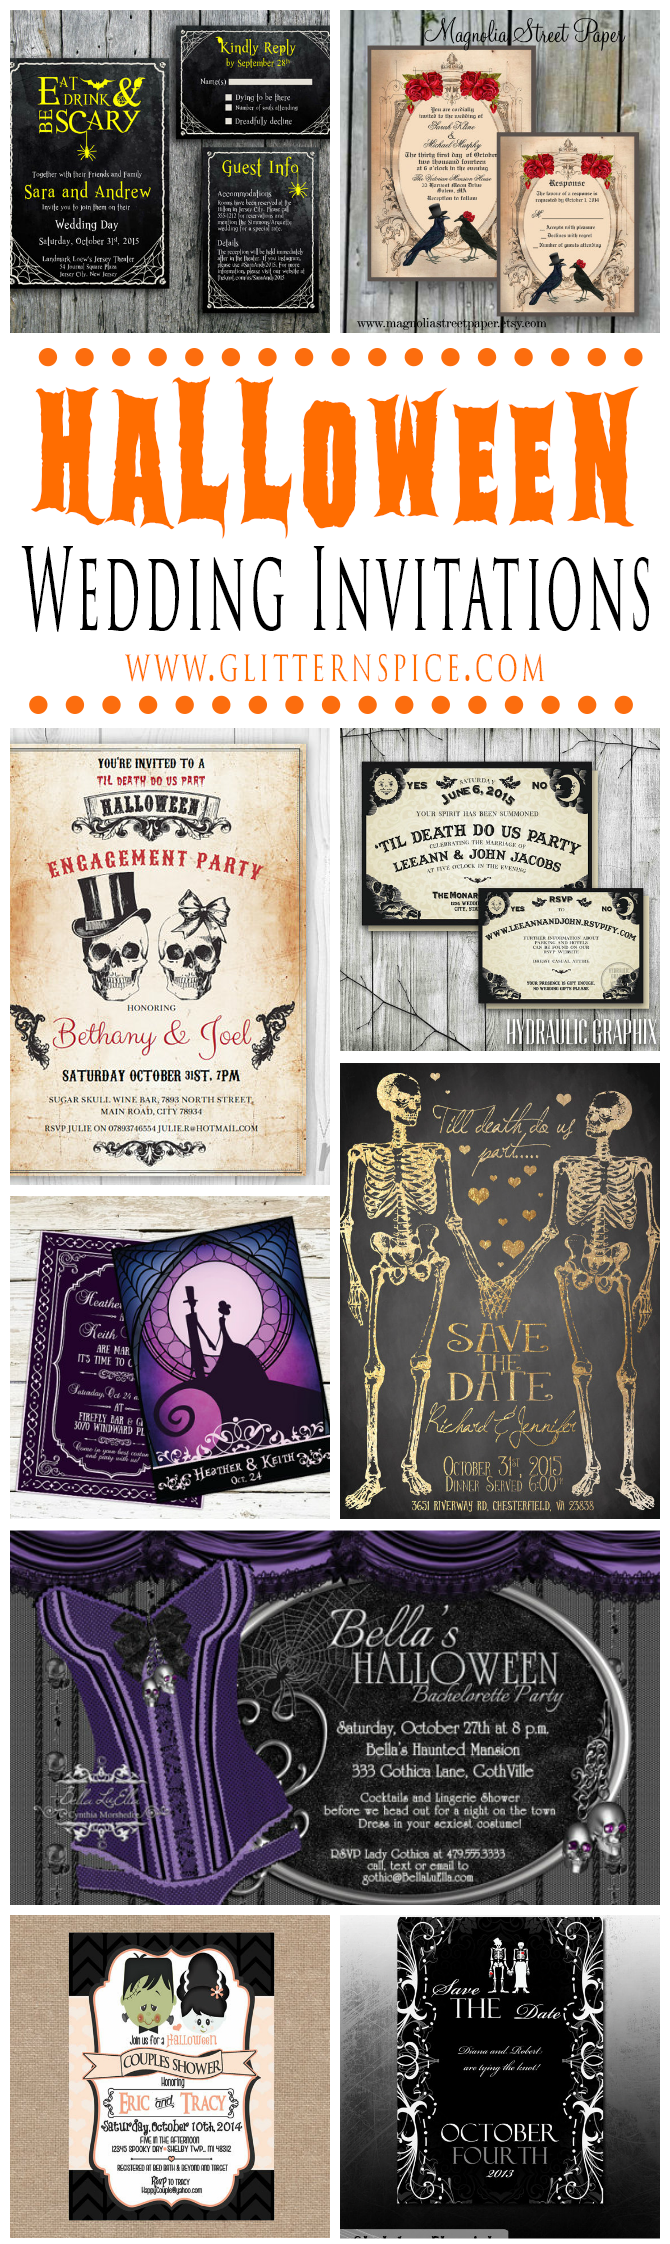 Spooktacular Halloween Wedding Invitations | Glitter \'N Spice